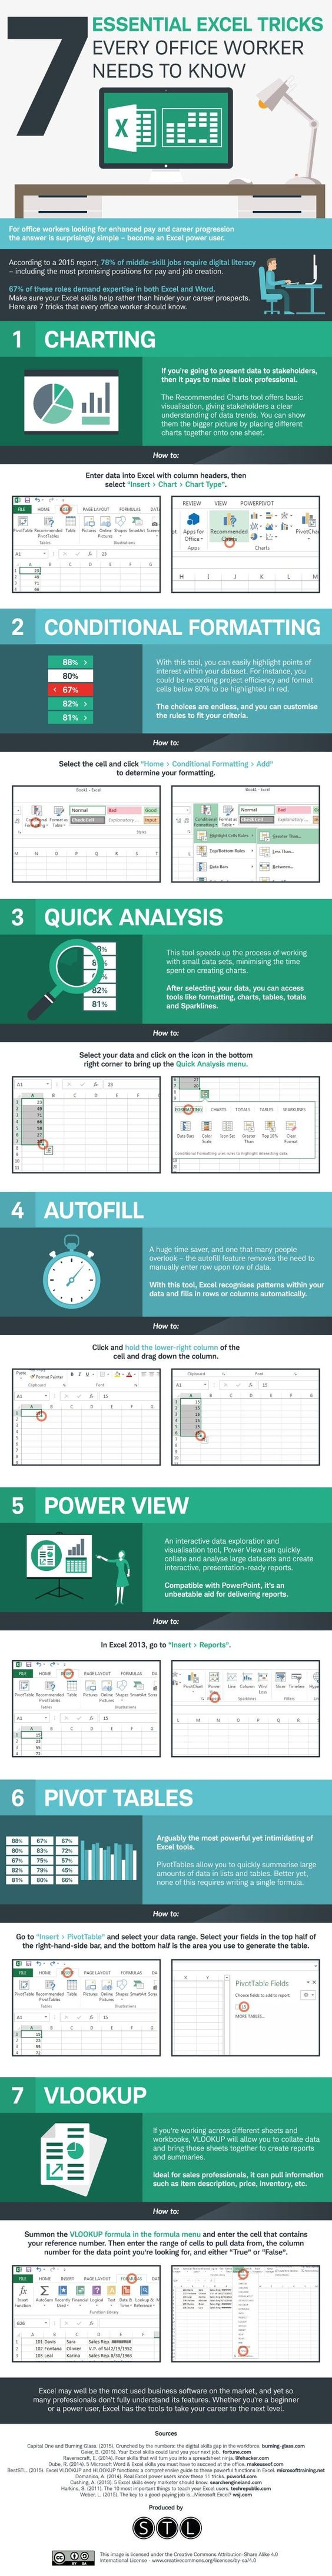 7 Essential Excel Tricks Every Office Worker Needs To Know #infographic #Productivity #EmployeeBenefits